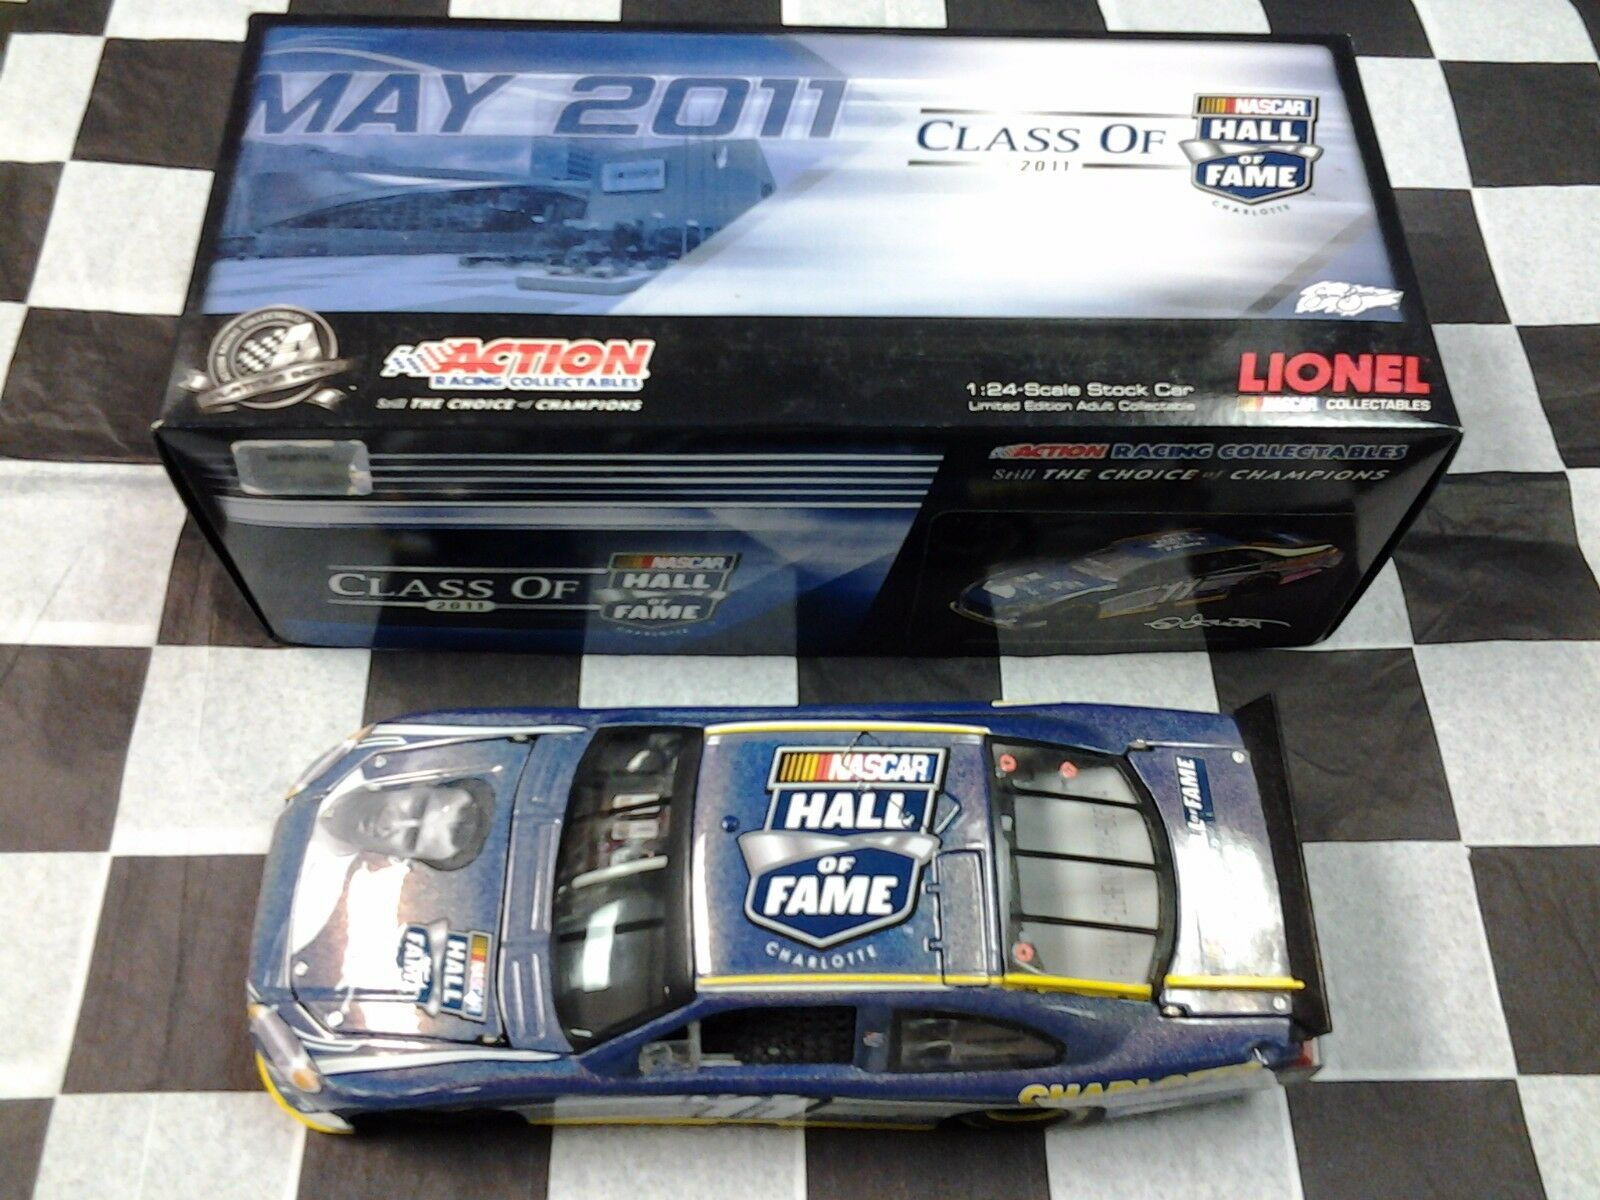 Ned Jarrett #11 NHOF Class of 2011 Action NIB Flashcoat Color Nascar Hall Fame